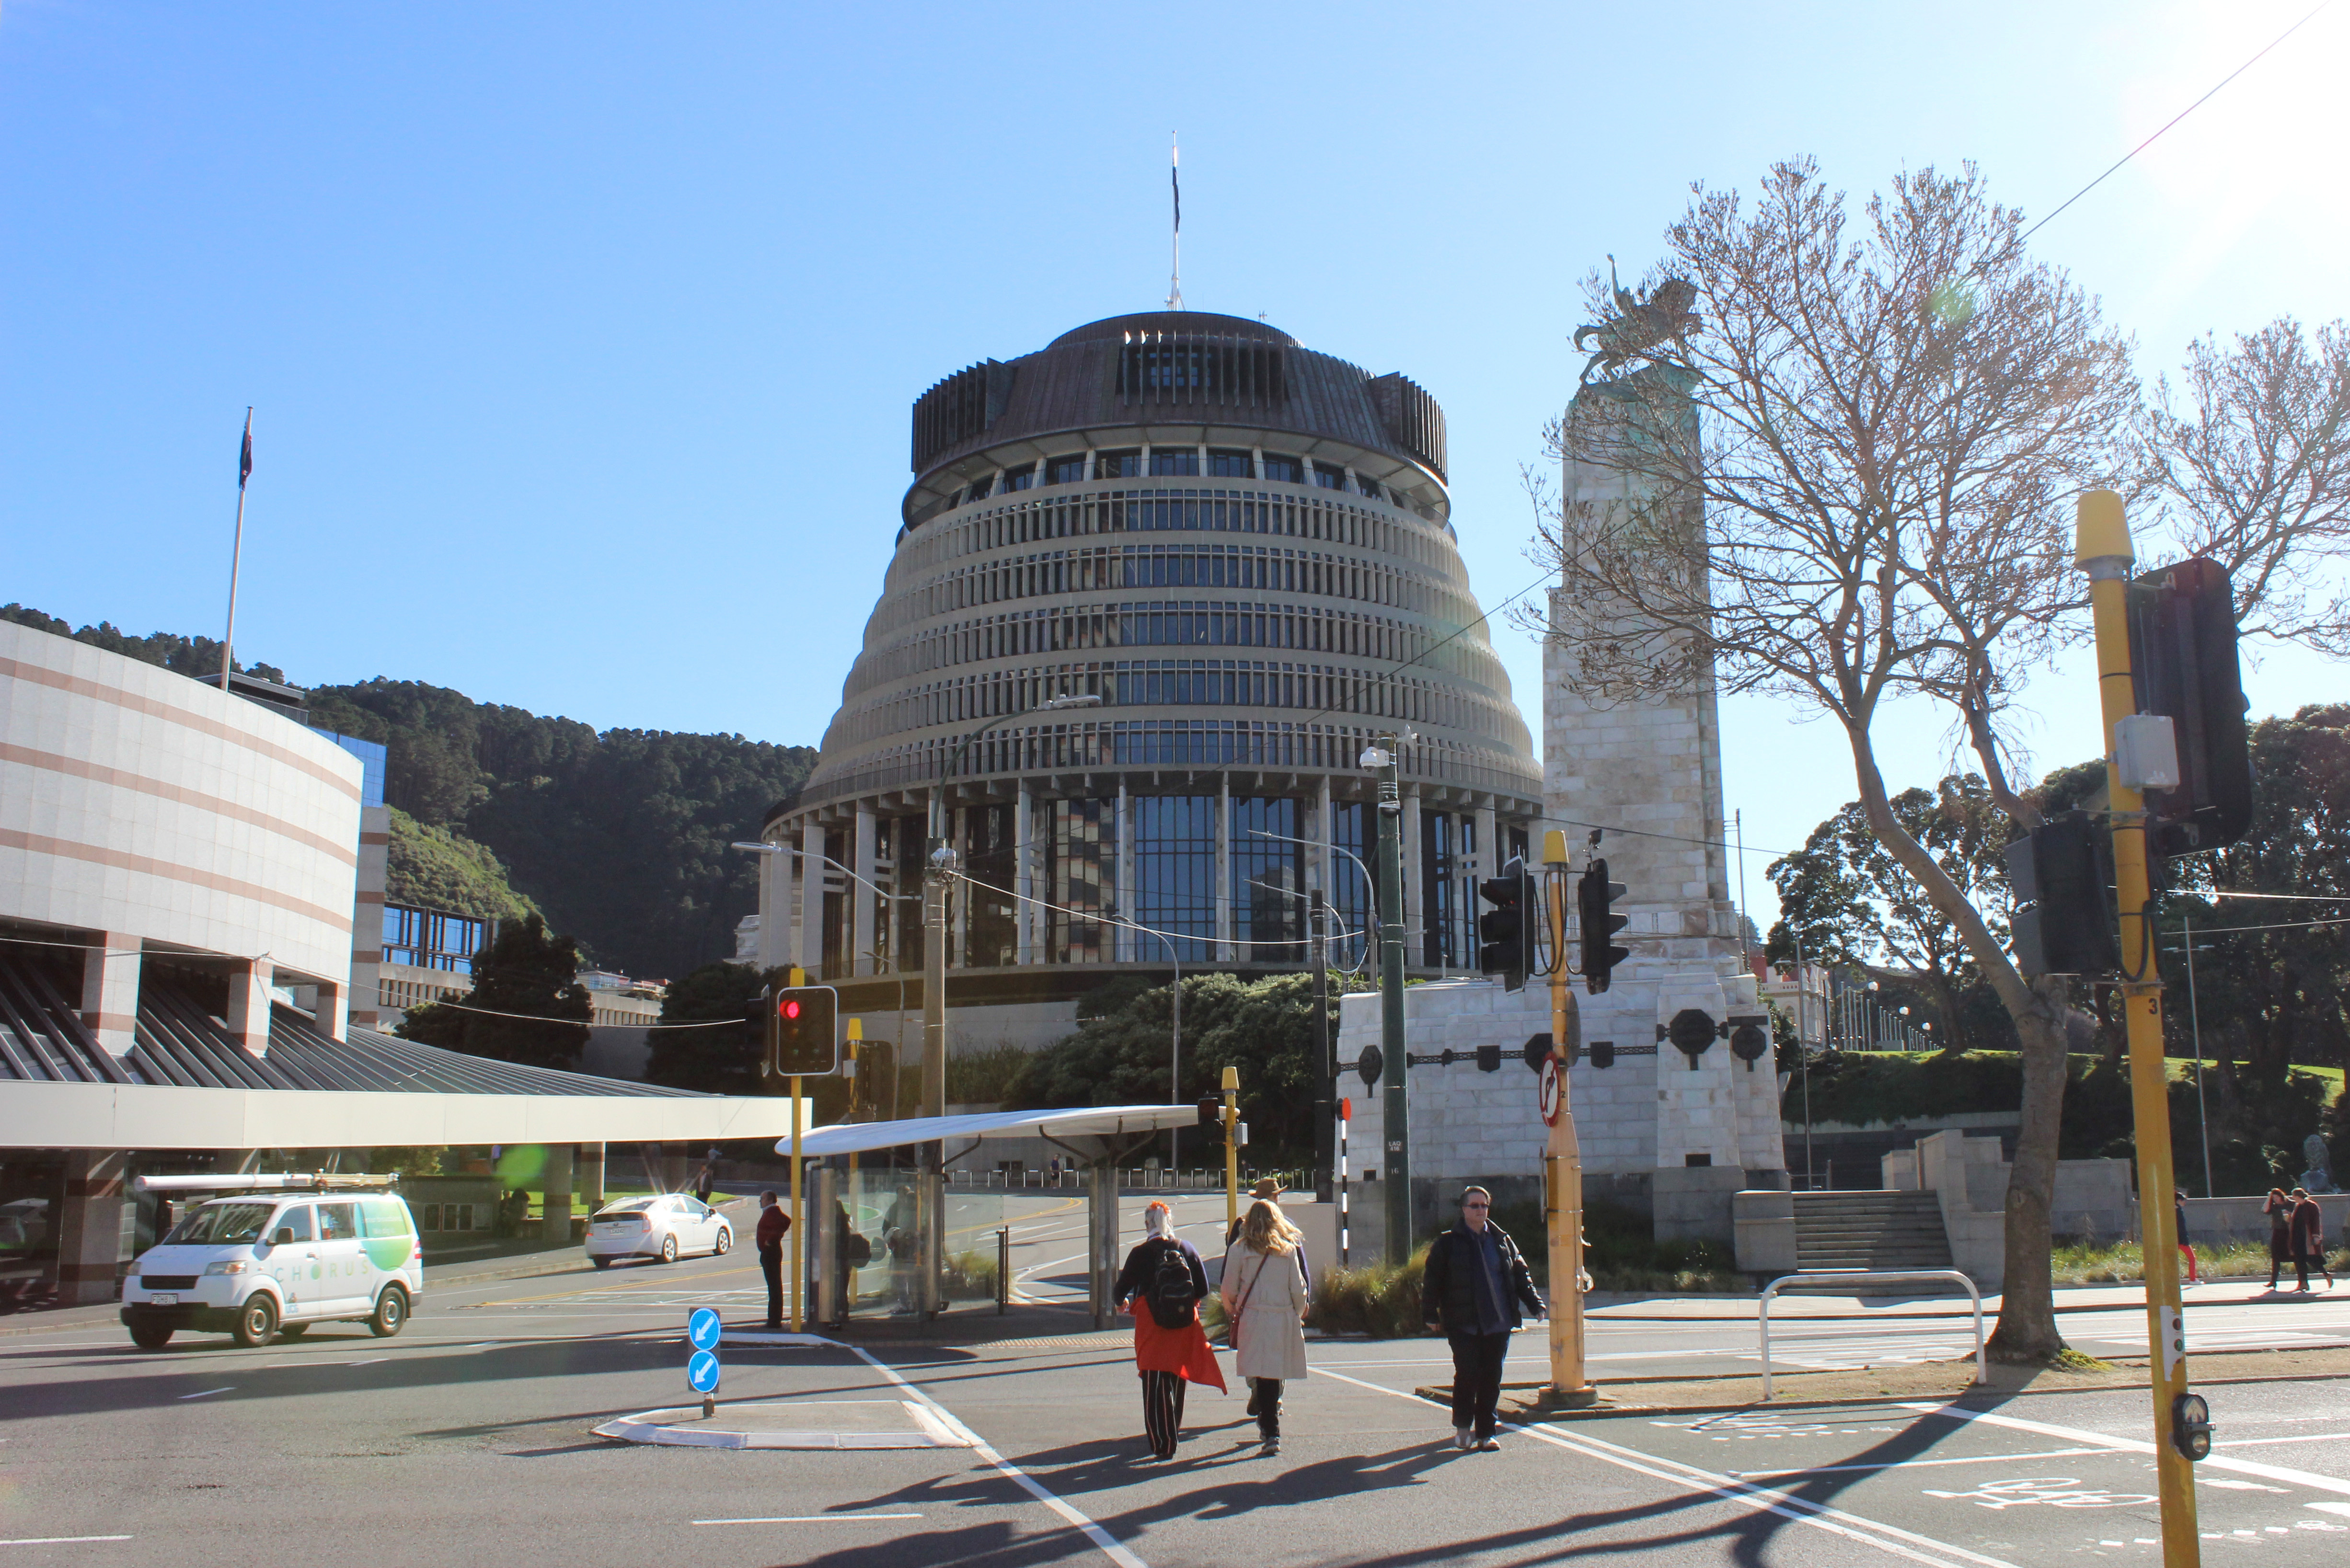 image of the New Zealand Parliament complex